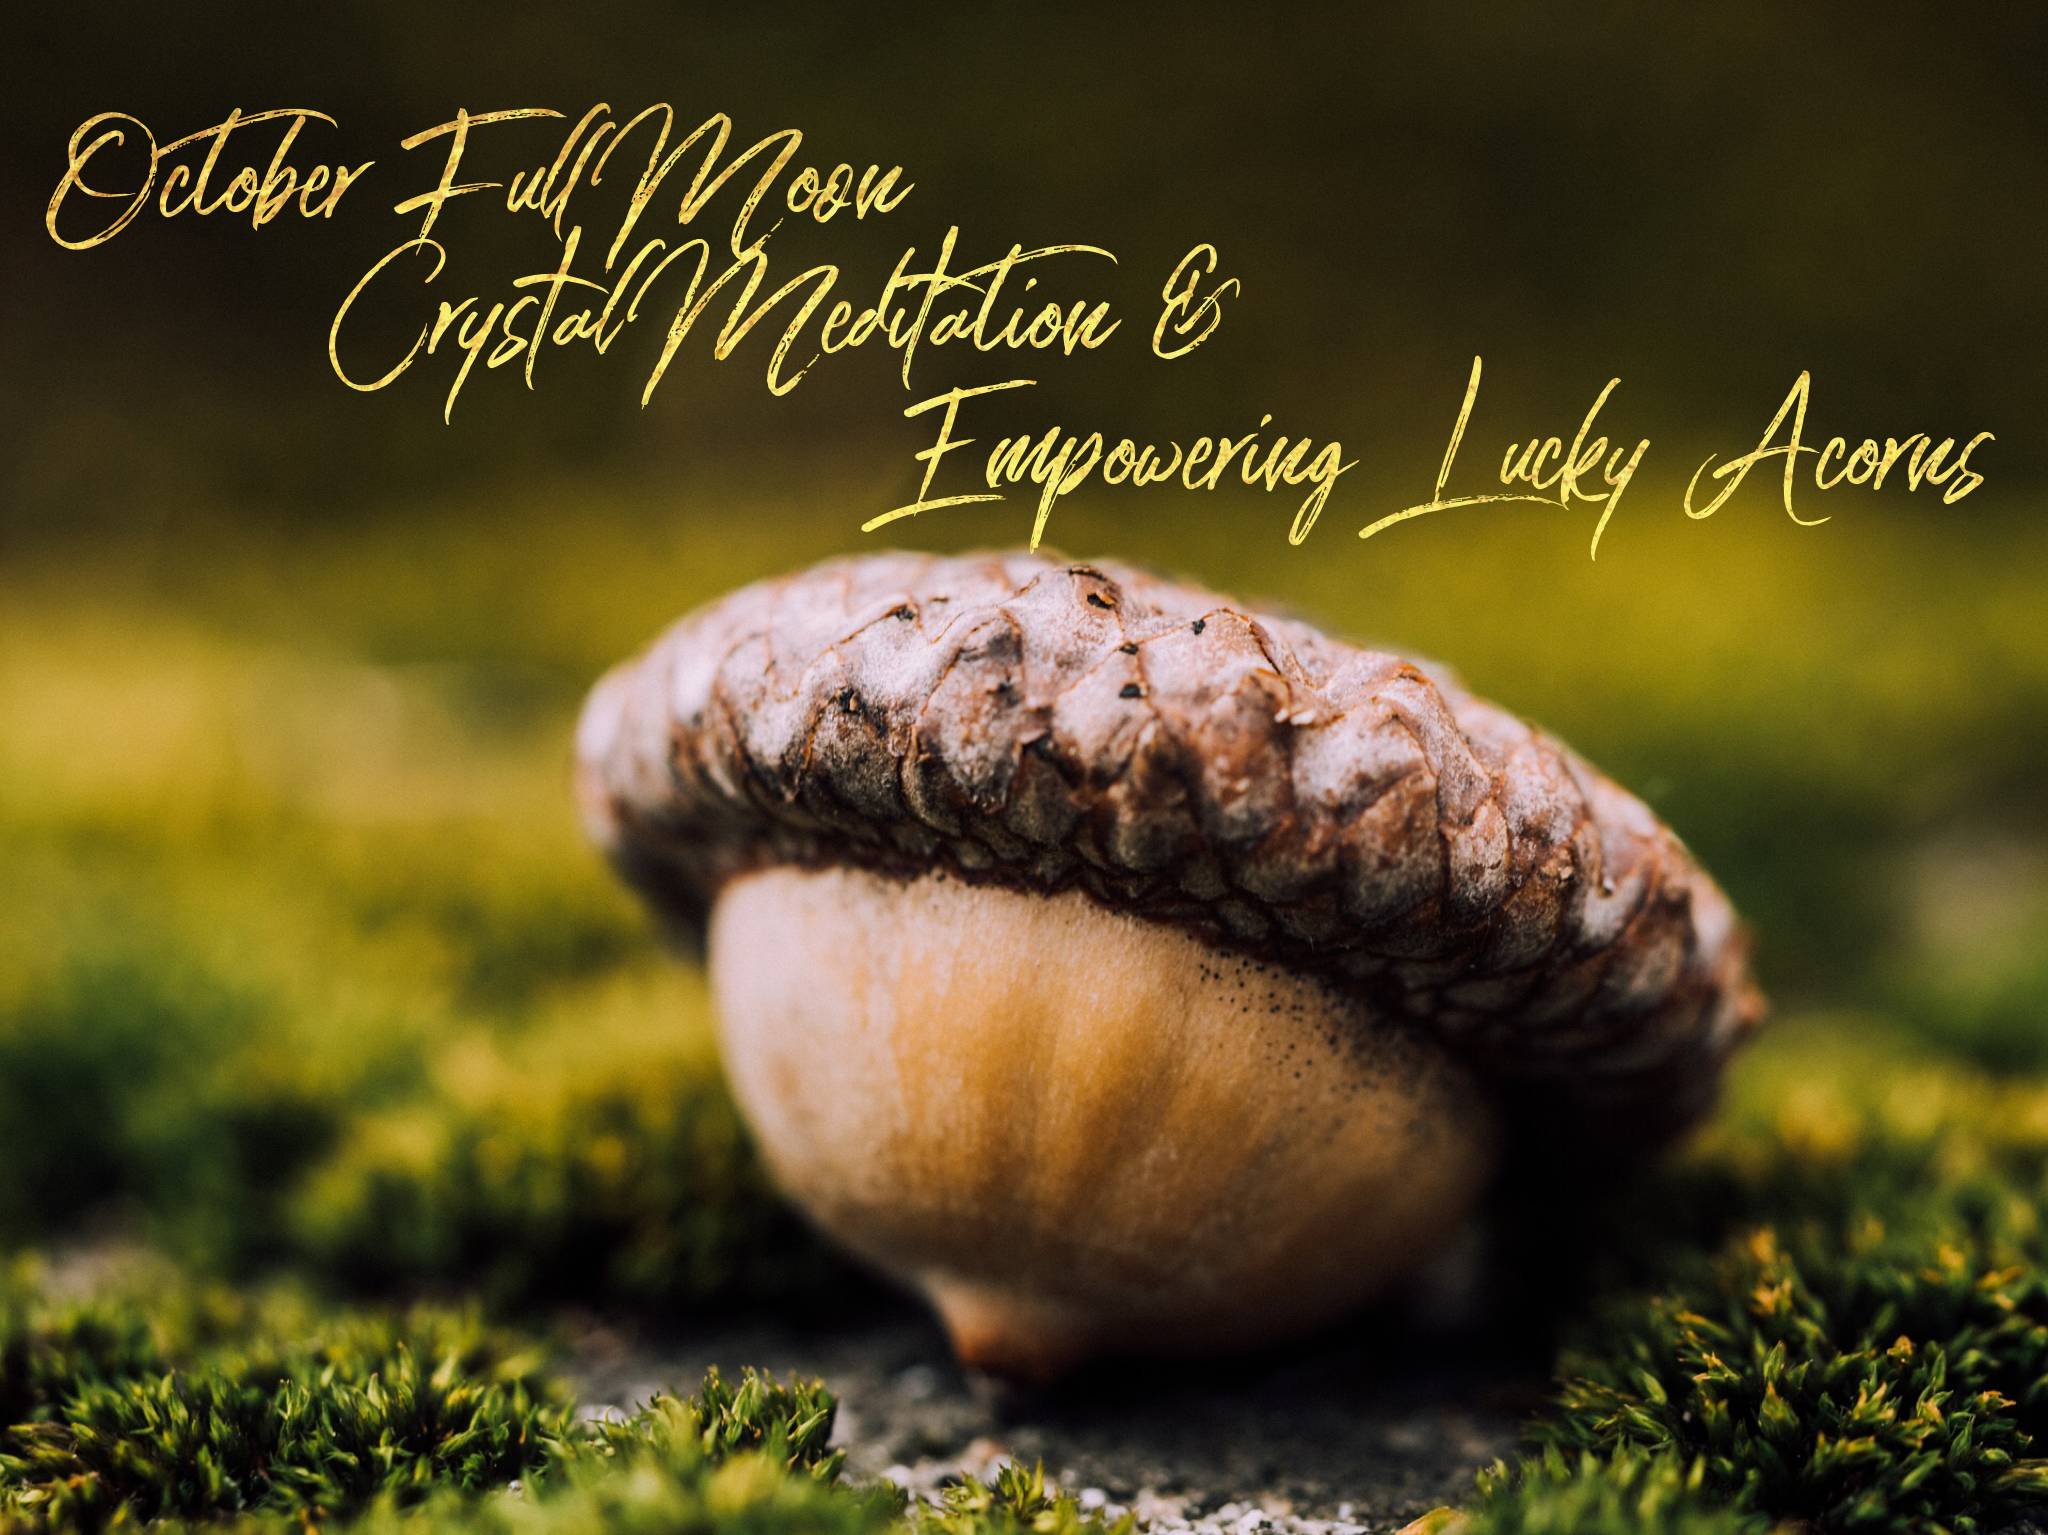 Full Moon Crystal Meditation and Empowering Lucky Acorns